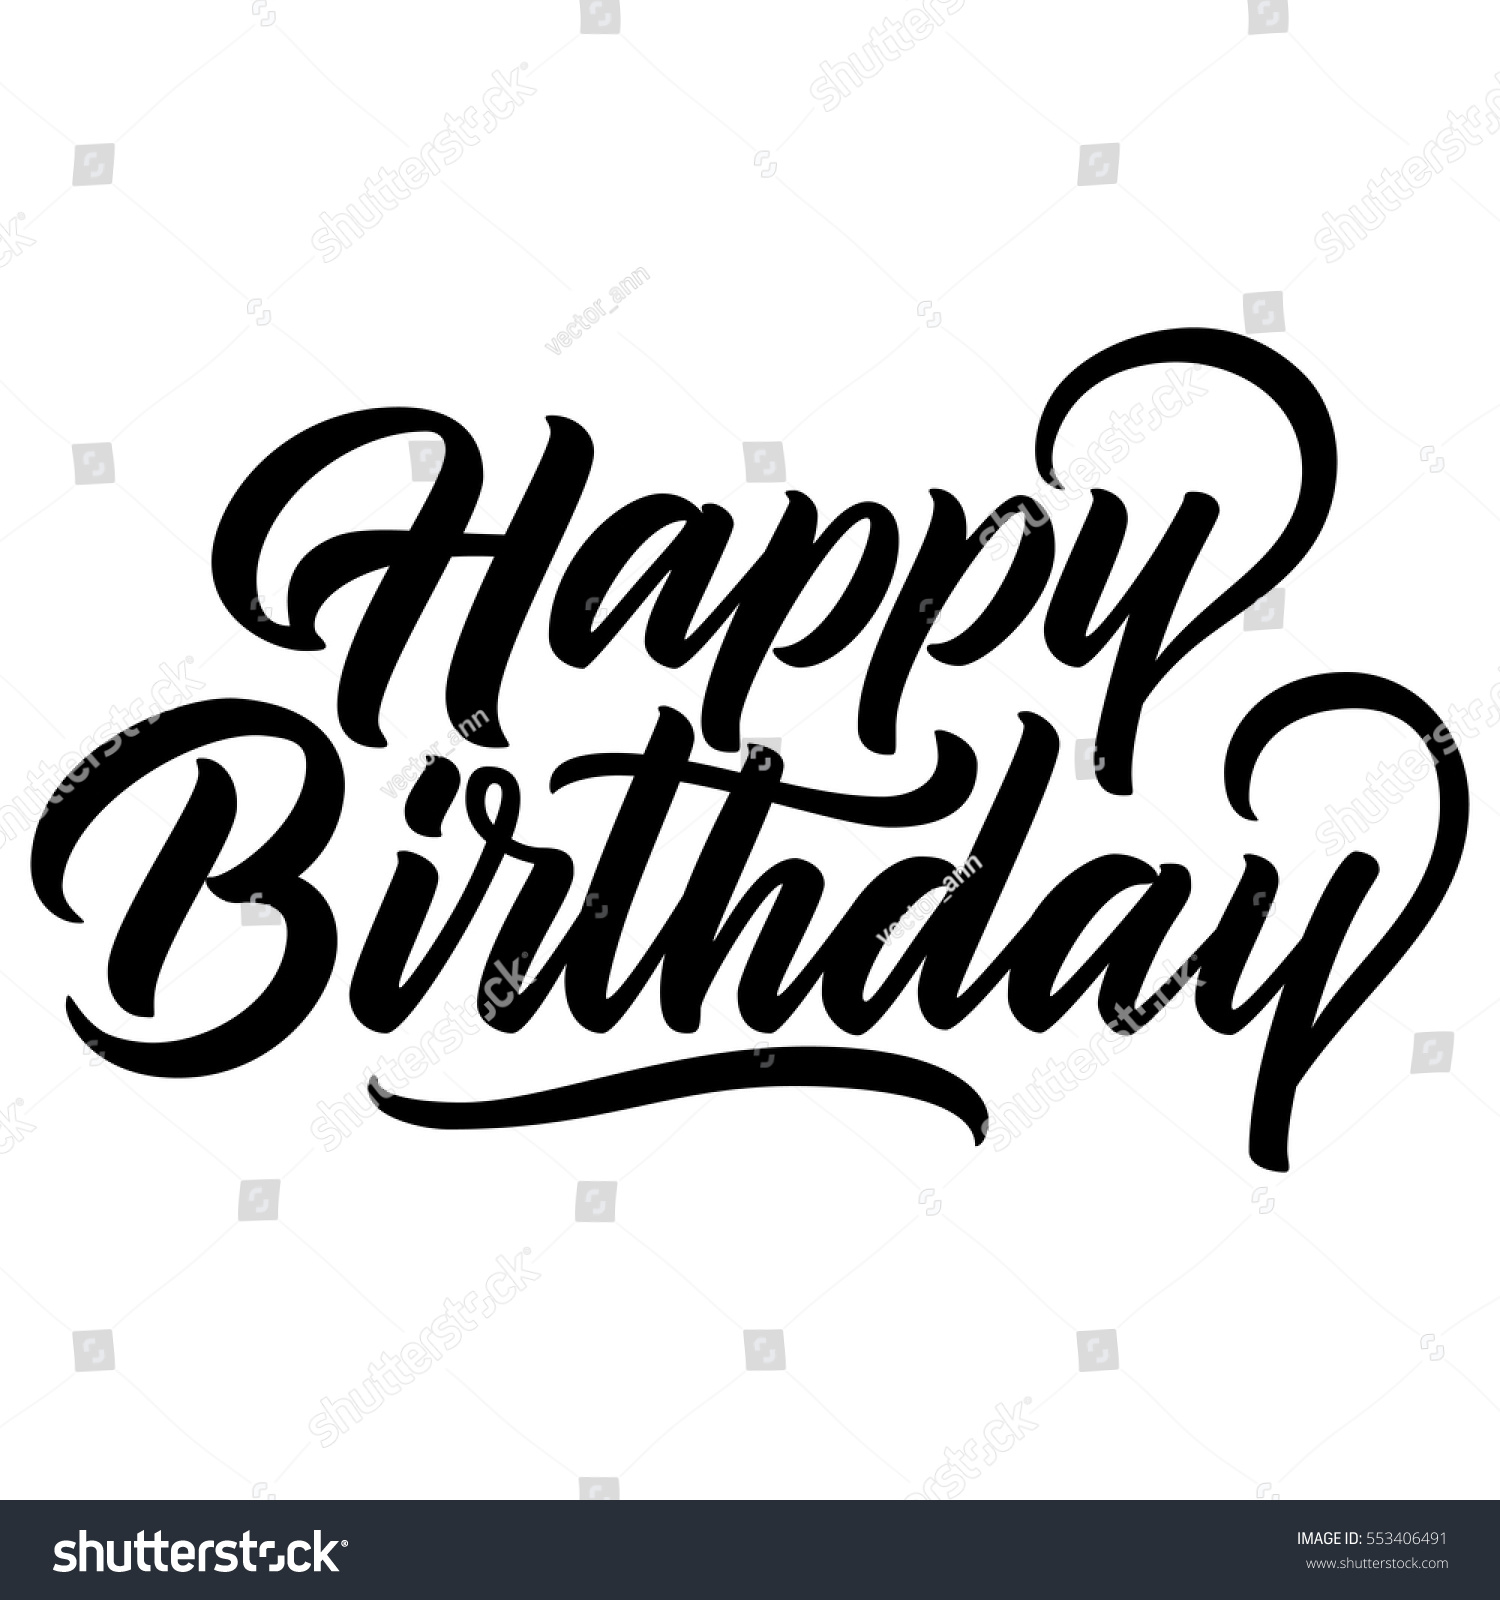 happy birthday logo images ; stock-vector-happy-birthday-vintage-hand-lettering-brush-ink-calligraphy-vector-type-design-isolated-on-white-553406491